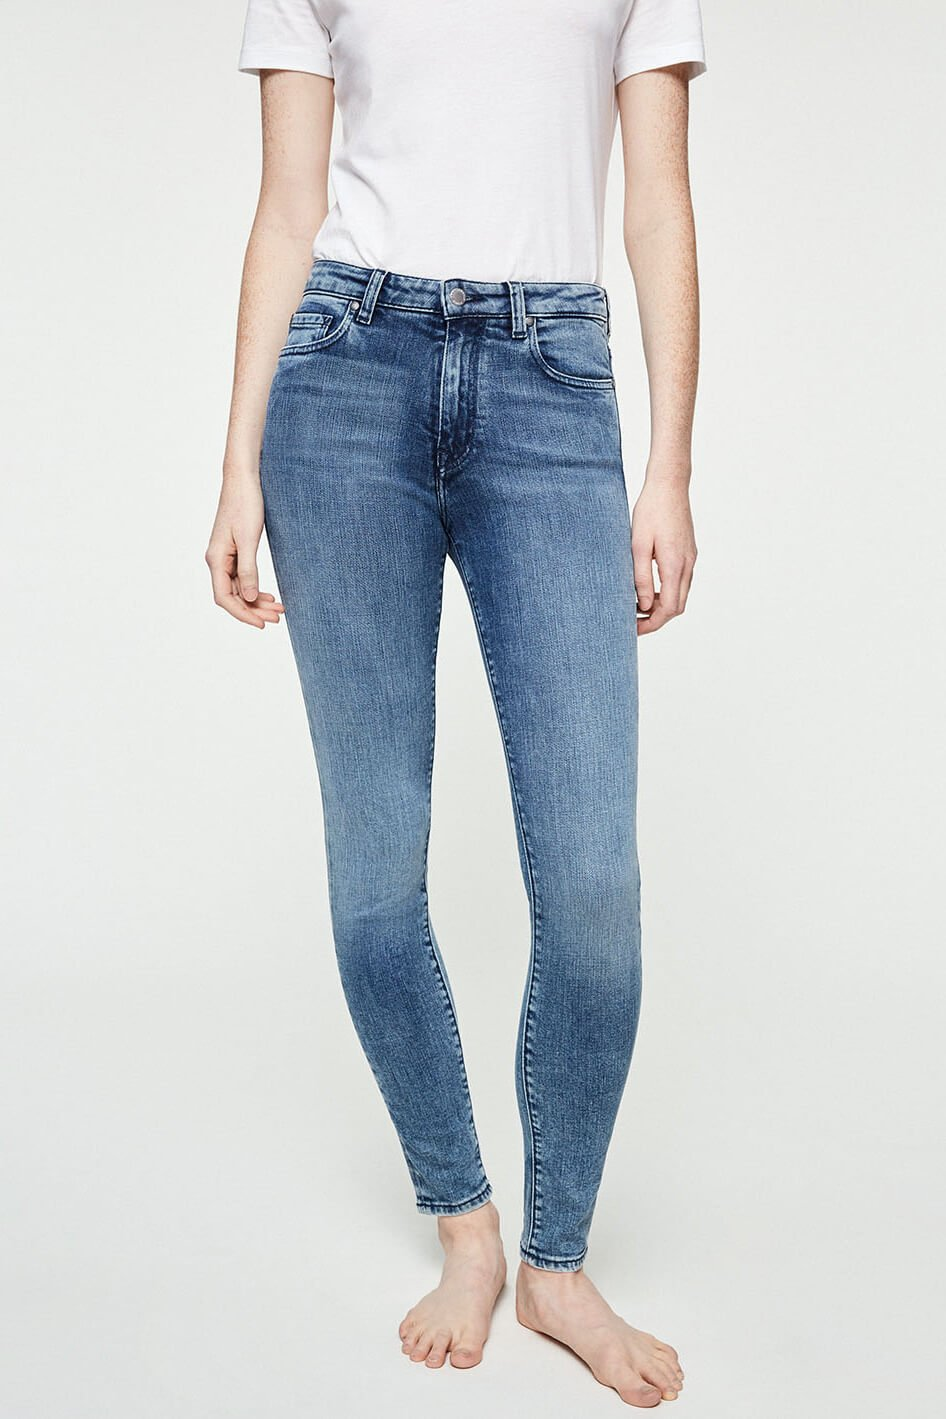 Jeans Tillaa Stone Wash Blau from LOVECO